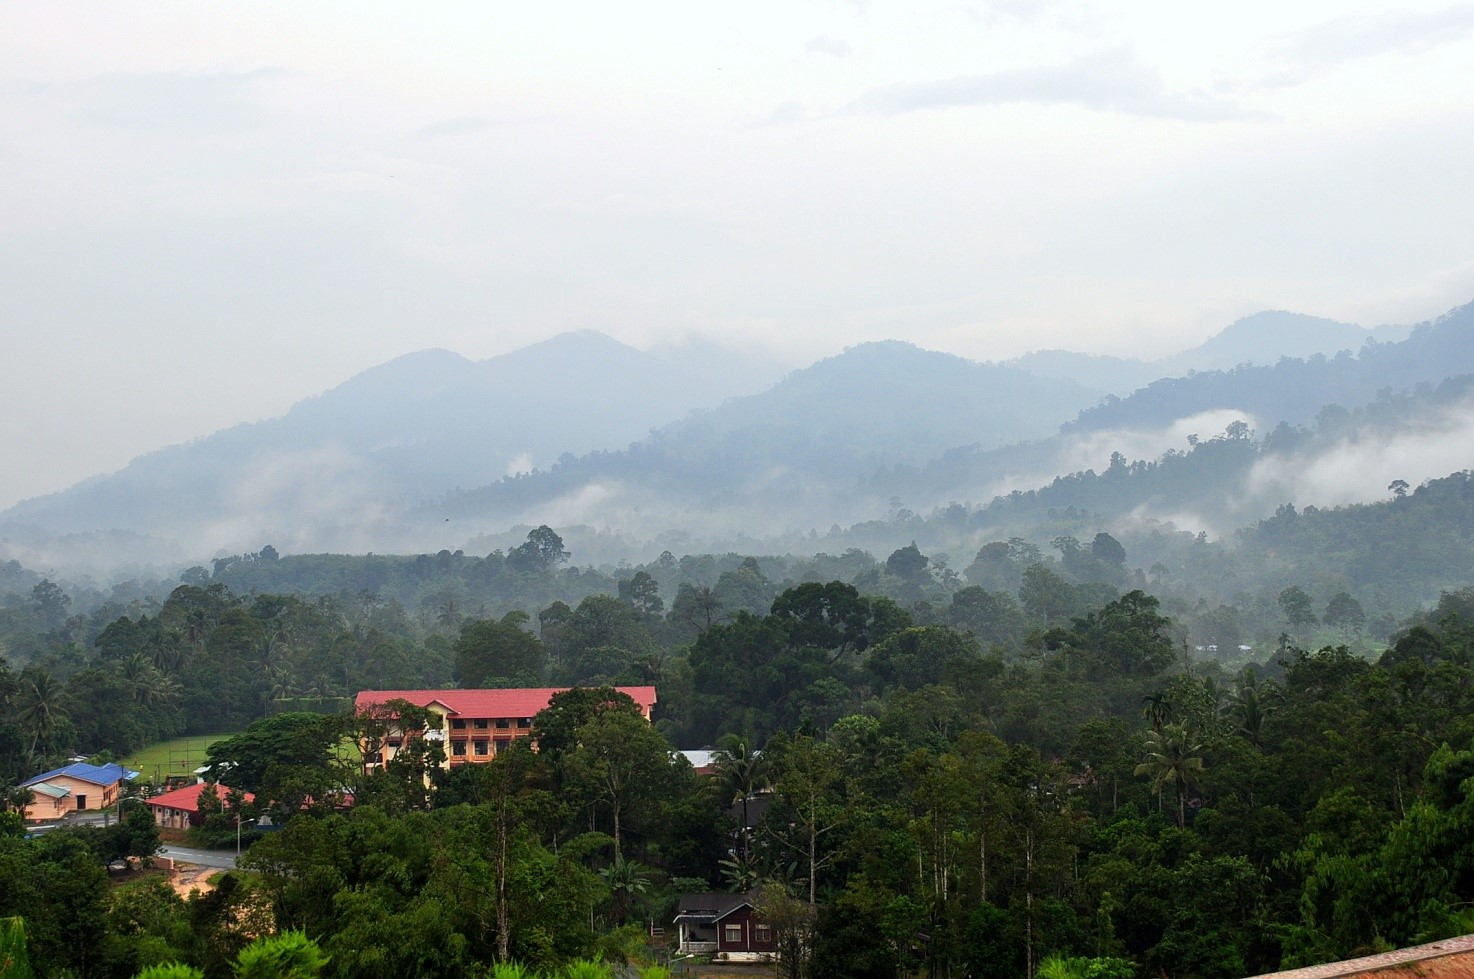 A view of the misty Banjaran Titiwangsa from Janda Baik in the early morning